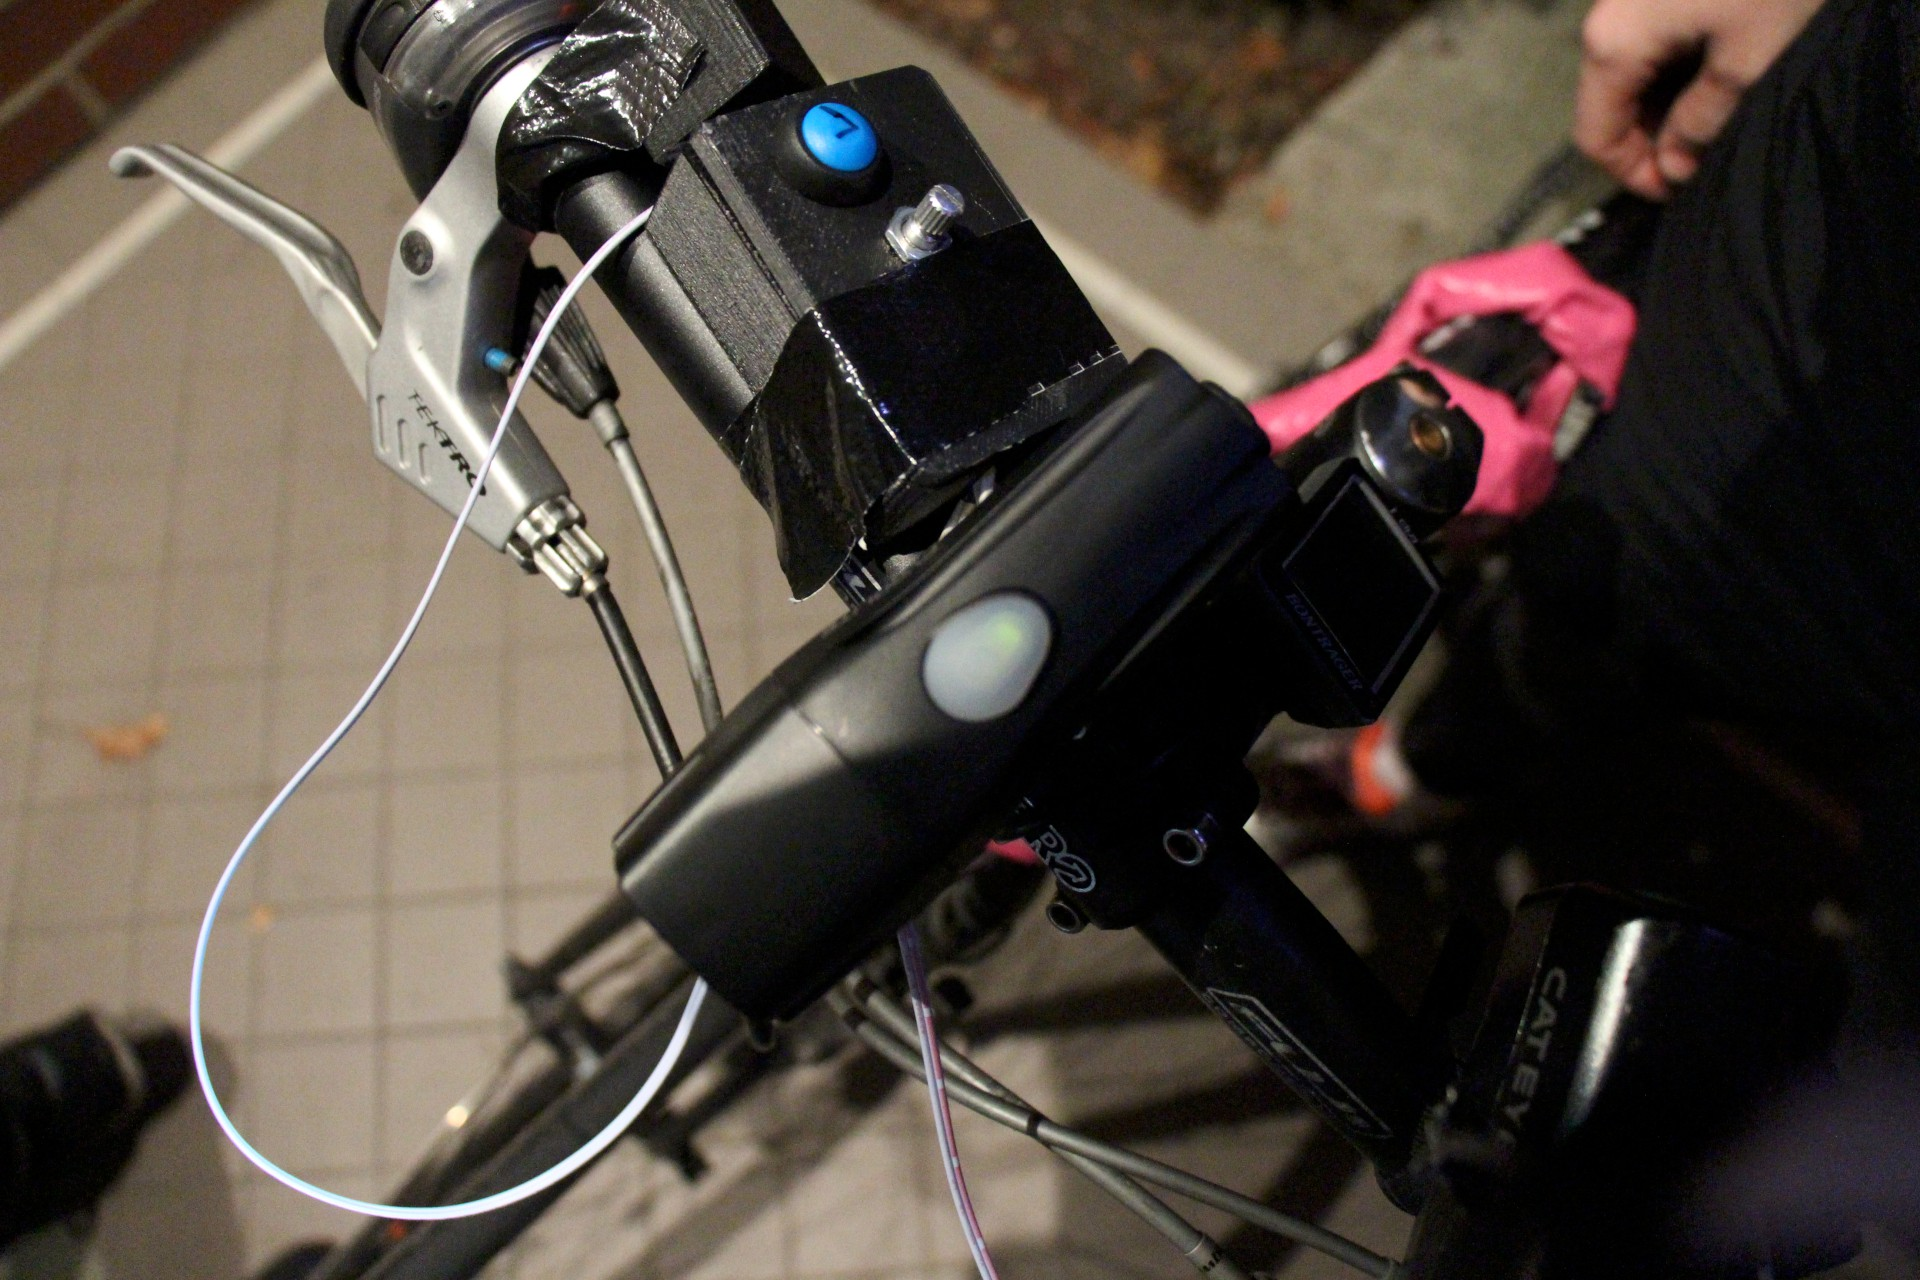 Main controller box mounted on the handlebars.